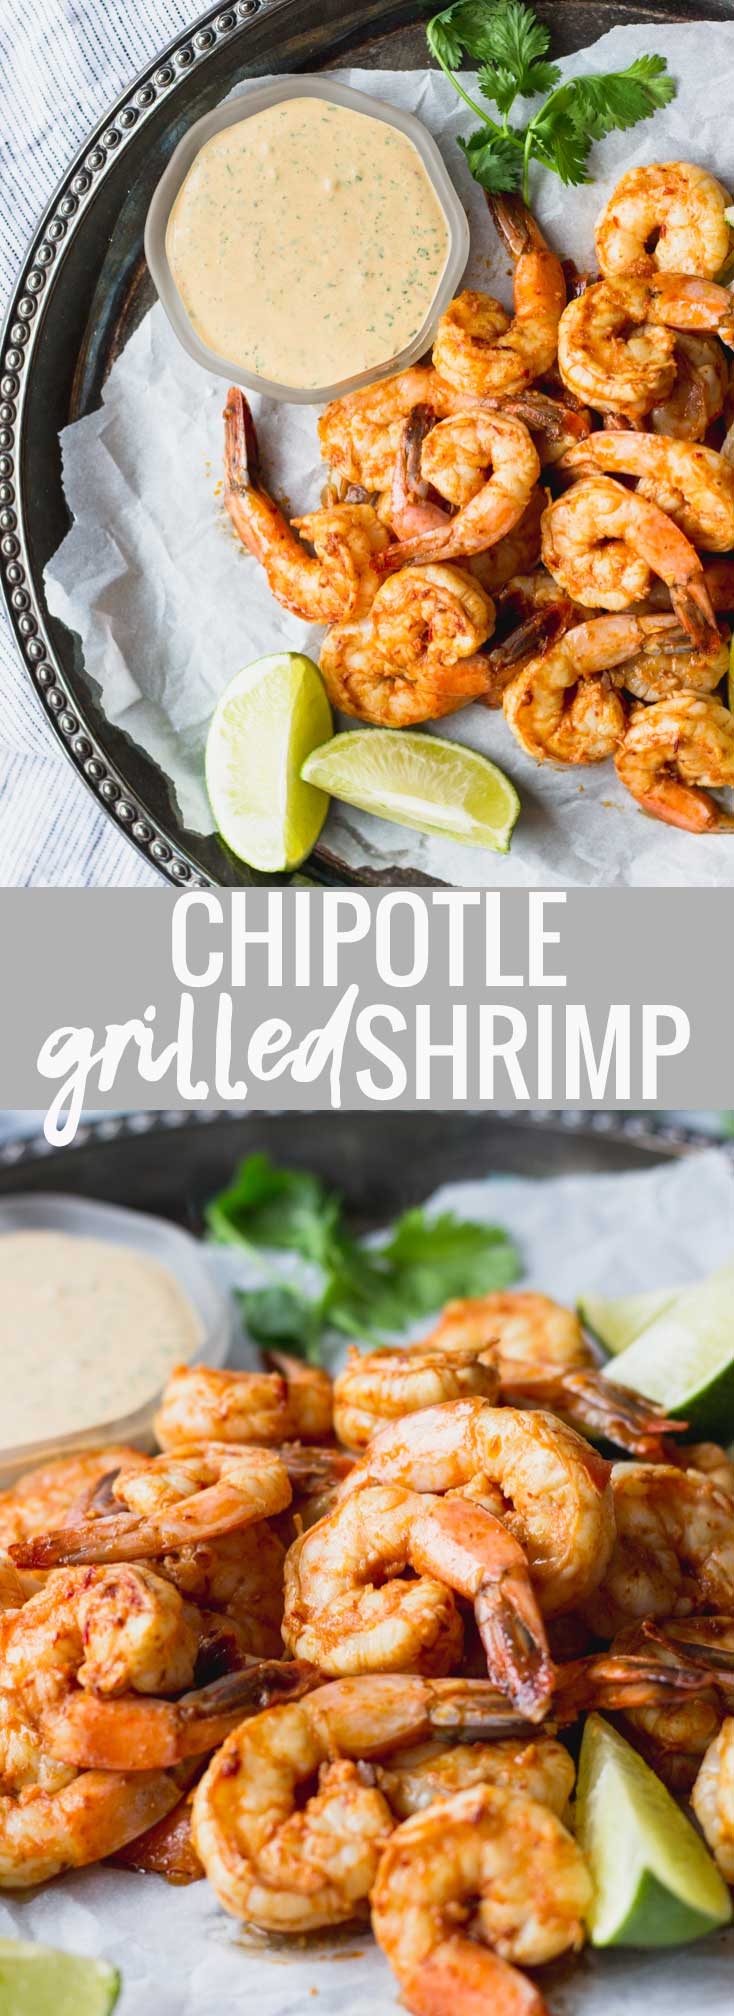 Chipotle Grilled Shrimp - a quick and easy summertime dinner, full of flavor and with endless pairings! #healthy #recipe #summer #shrimp #grill